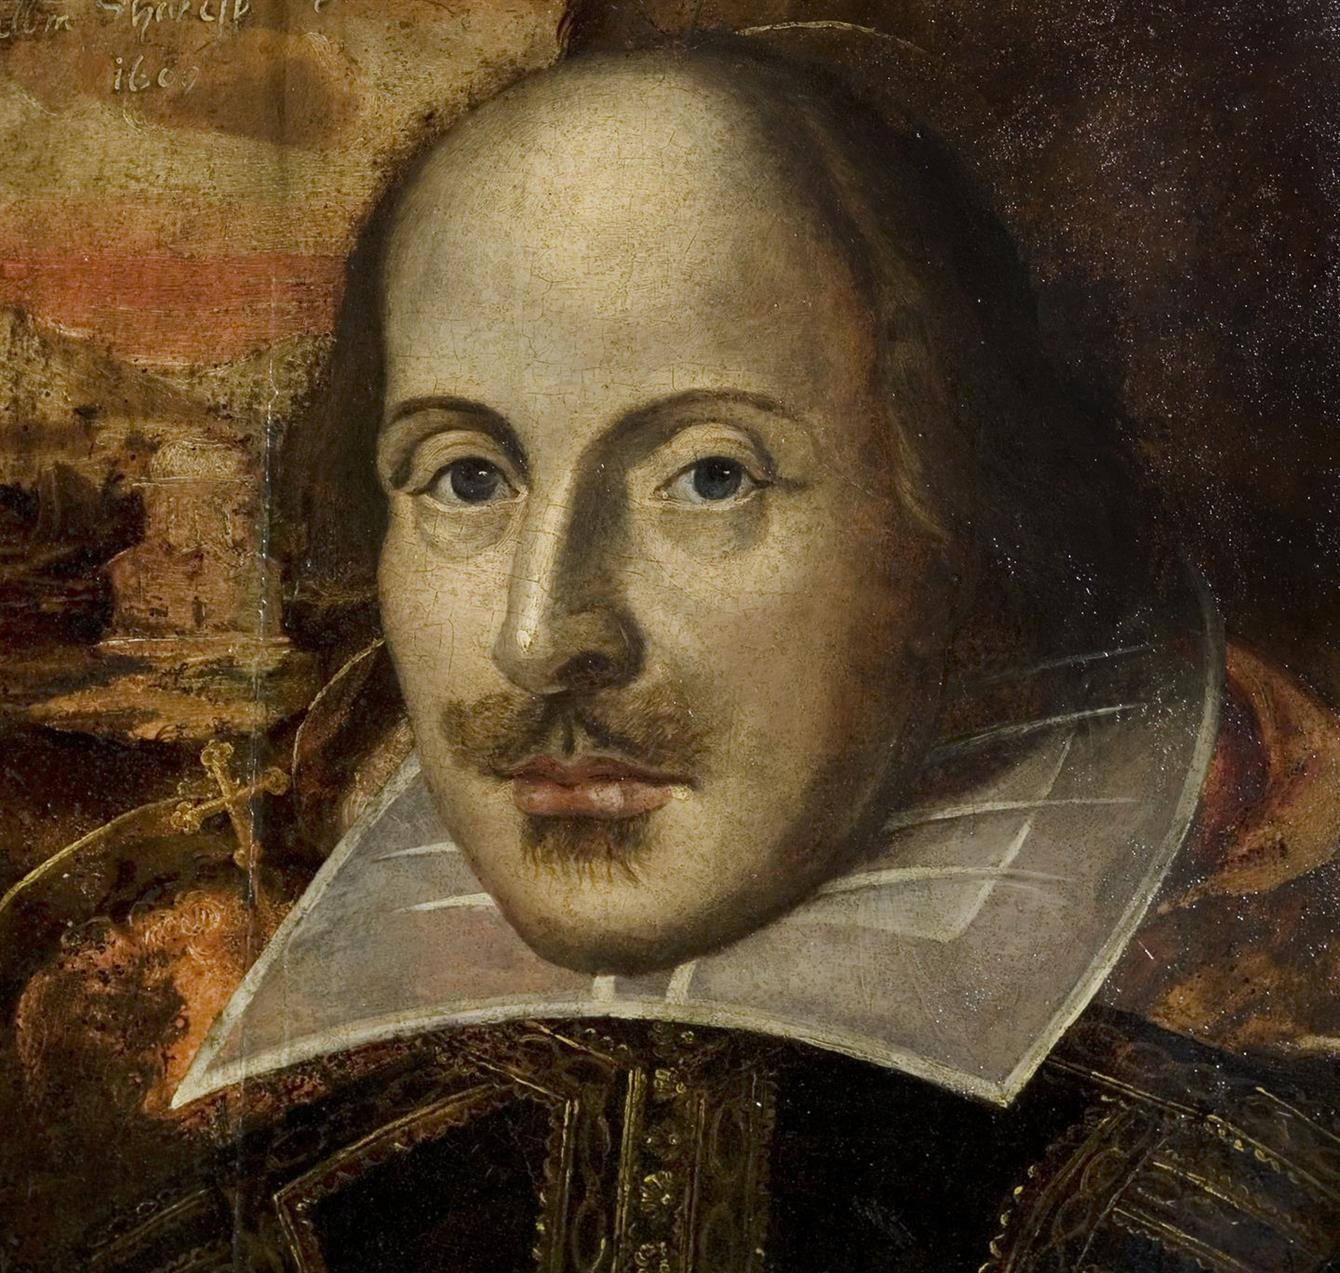 William Shakespeare's life and times | Royal Shakespeare Company